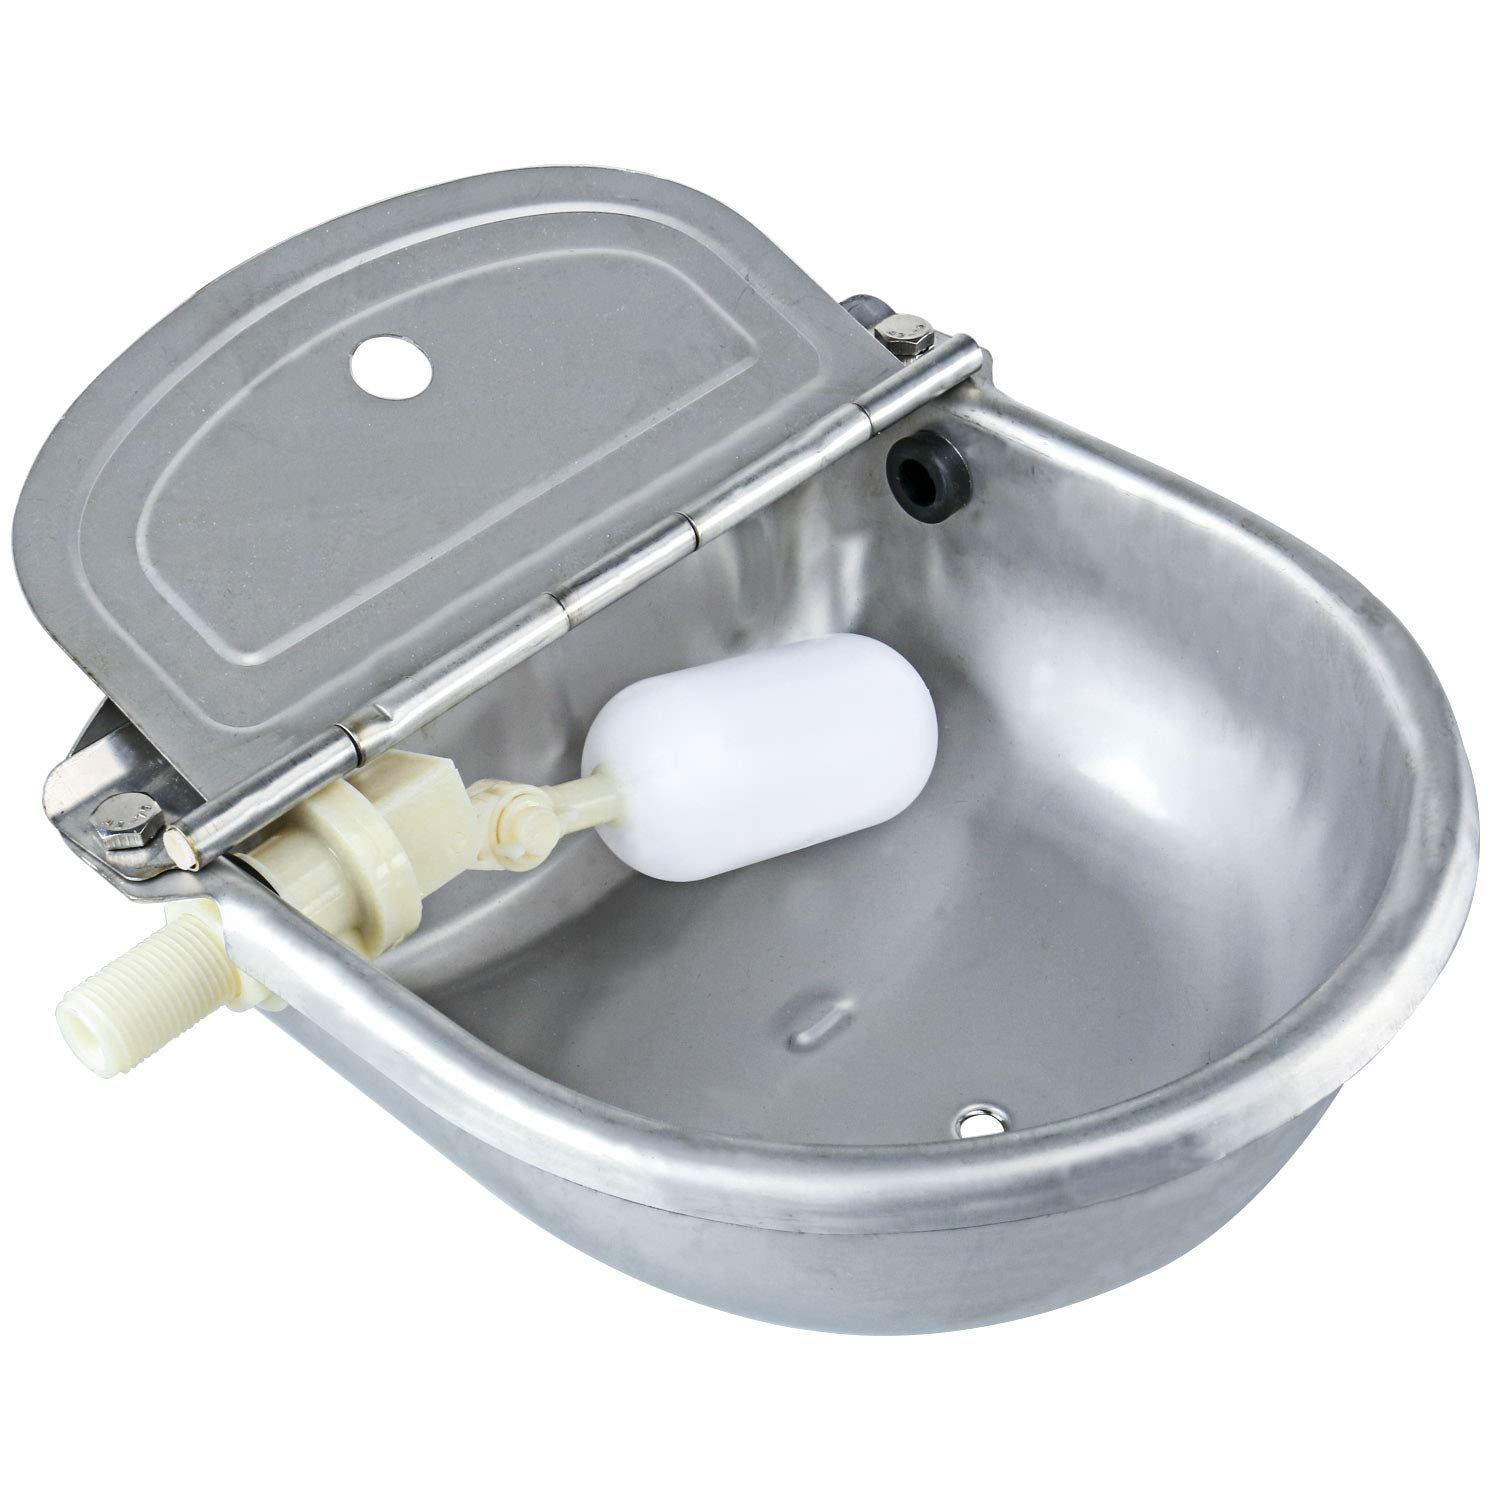 Homend Upgraded Automatic Waterer Bowl Farm Grade Stainless Stock Waterer Horse Cattle Goat Sheep Dog Water (with Drainage Hole) by Homend